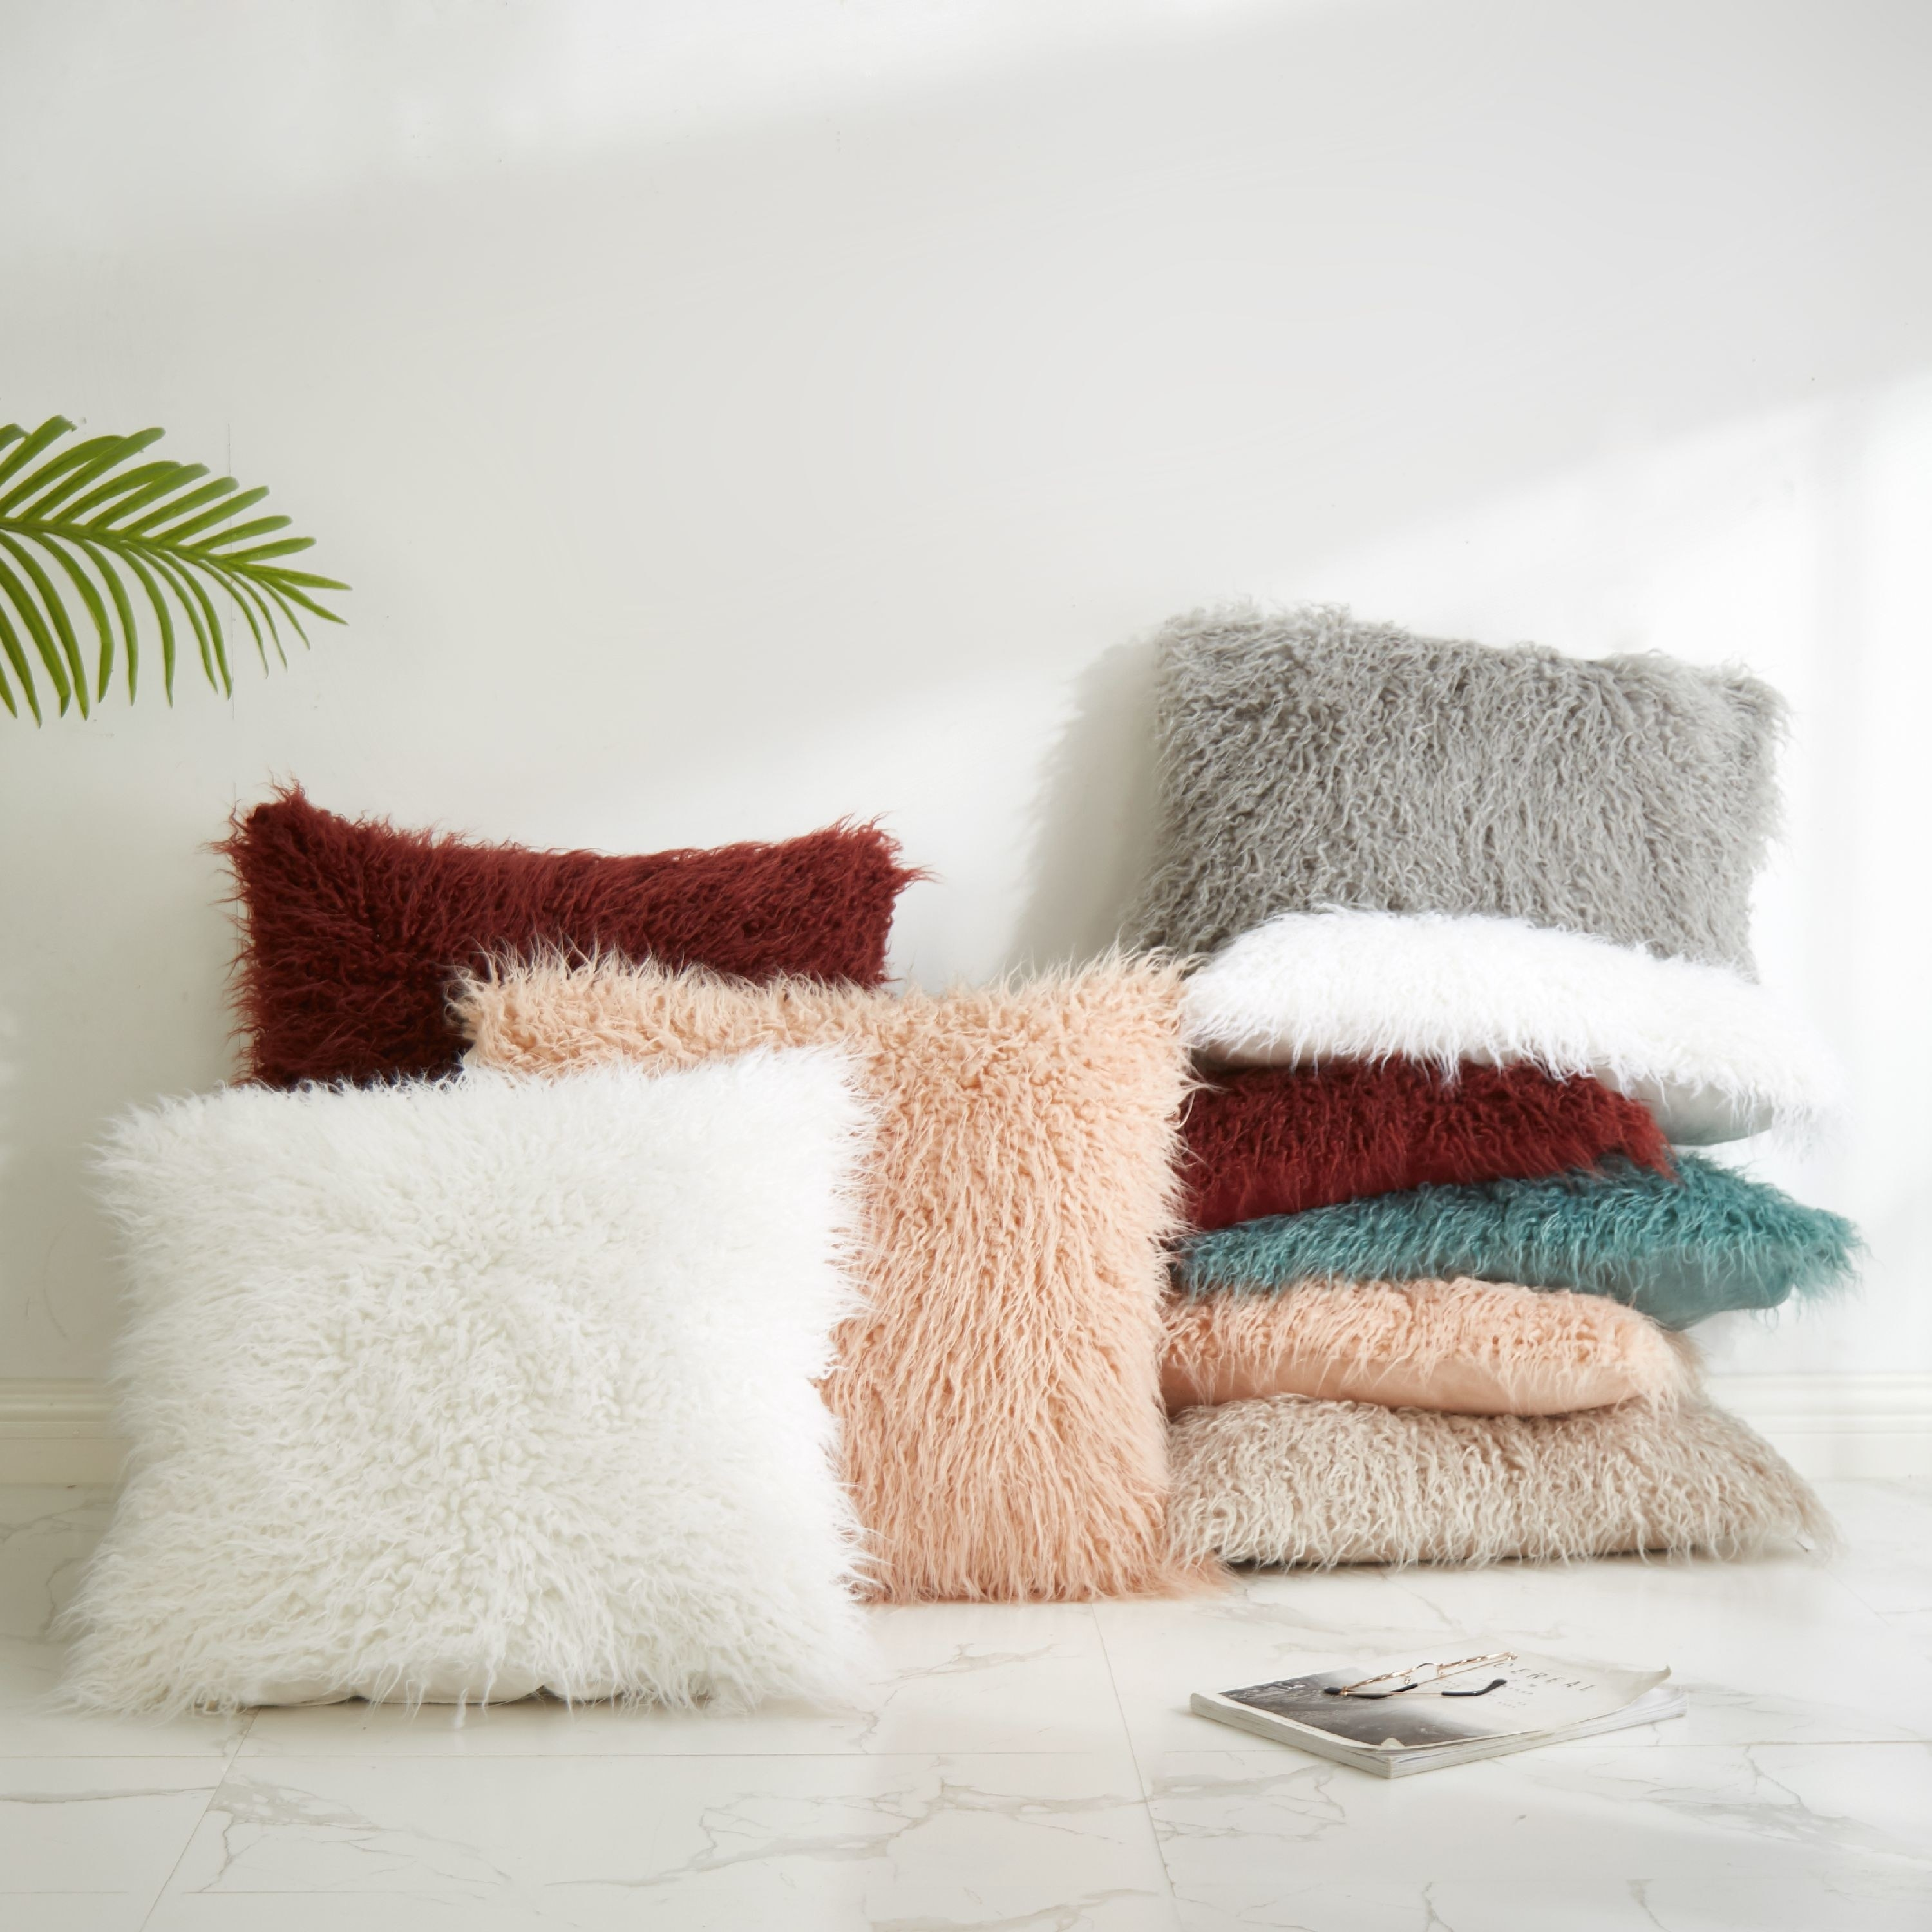 Super furry square pillows in various including white, gray, pink, seafoam green, and maroon.